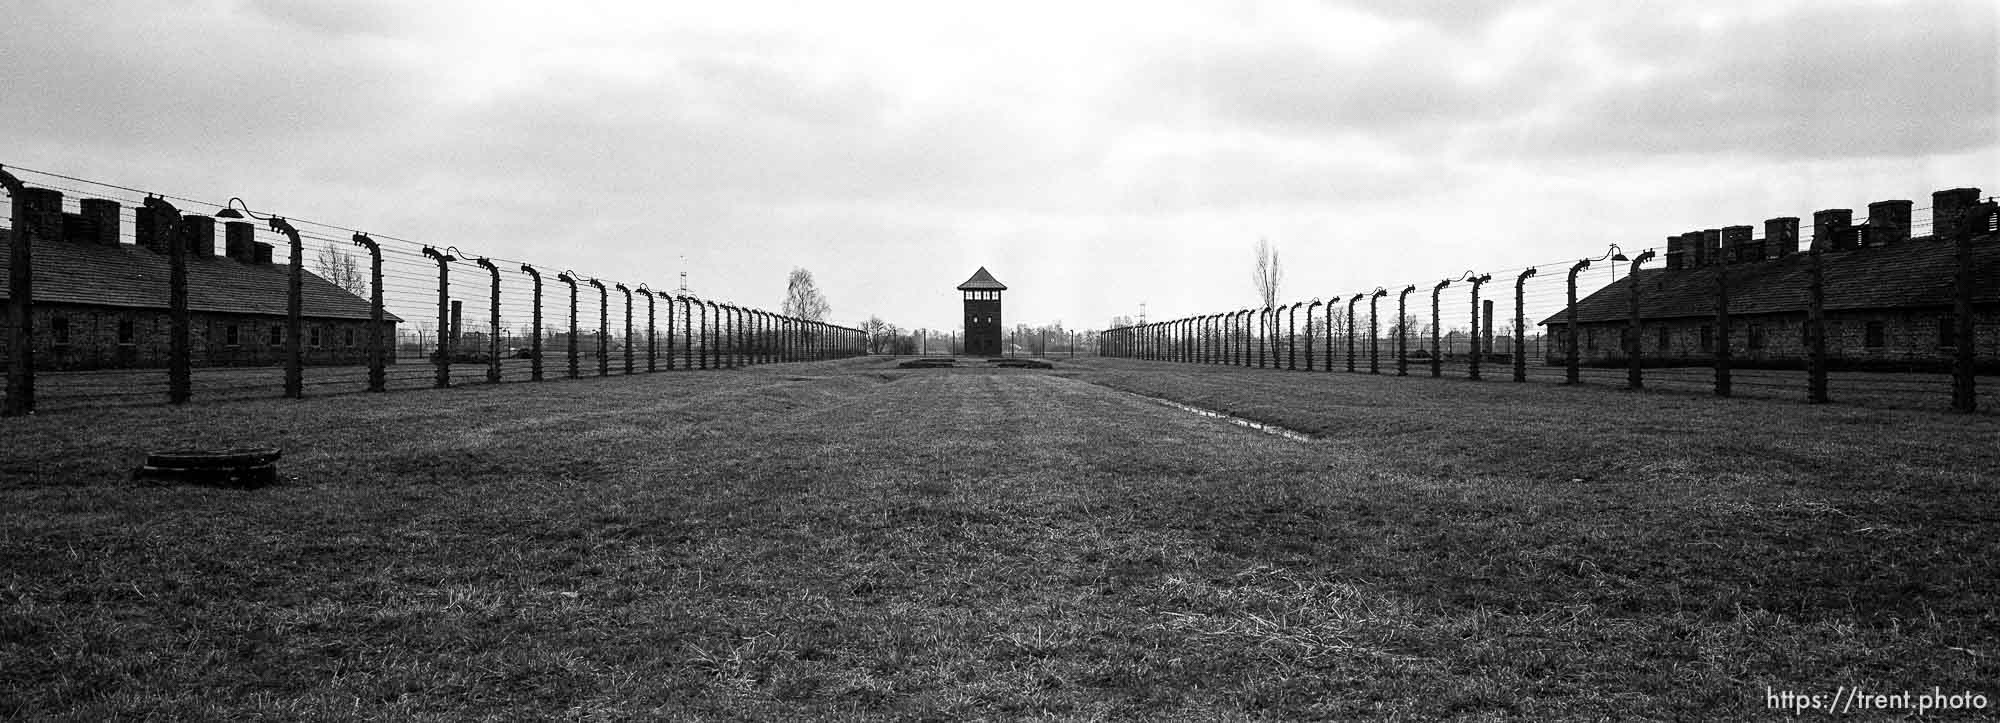 Guard tower and fences at the Birkenau Concentration Camp.